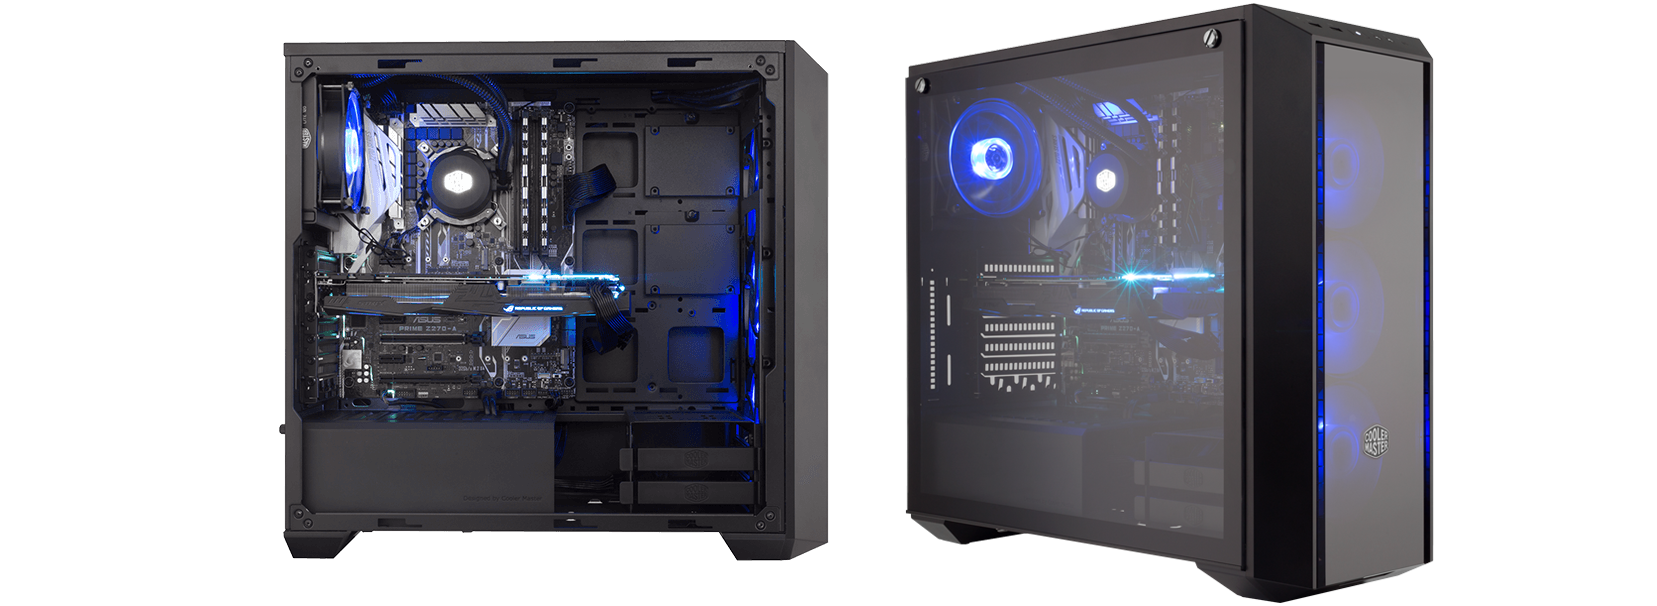 Masterbox Pro 5 Rgb Cooler Master Cpu Case Fan 3wire To Power Supply 4wire Takeoff Cable This Is Designed Allow Users The Freedom Configure Everything From Components Lighthing However They Want